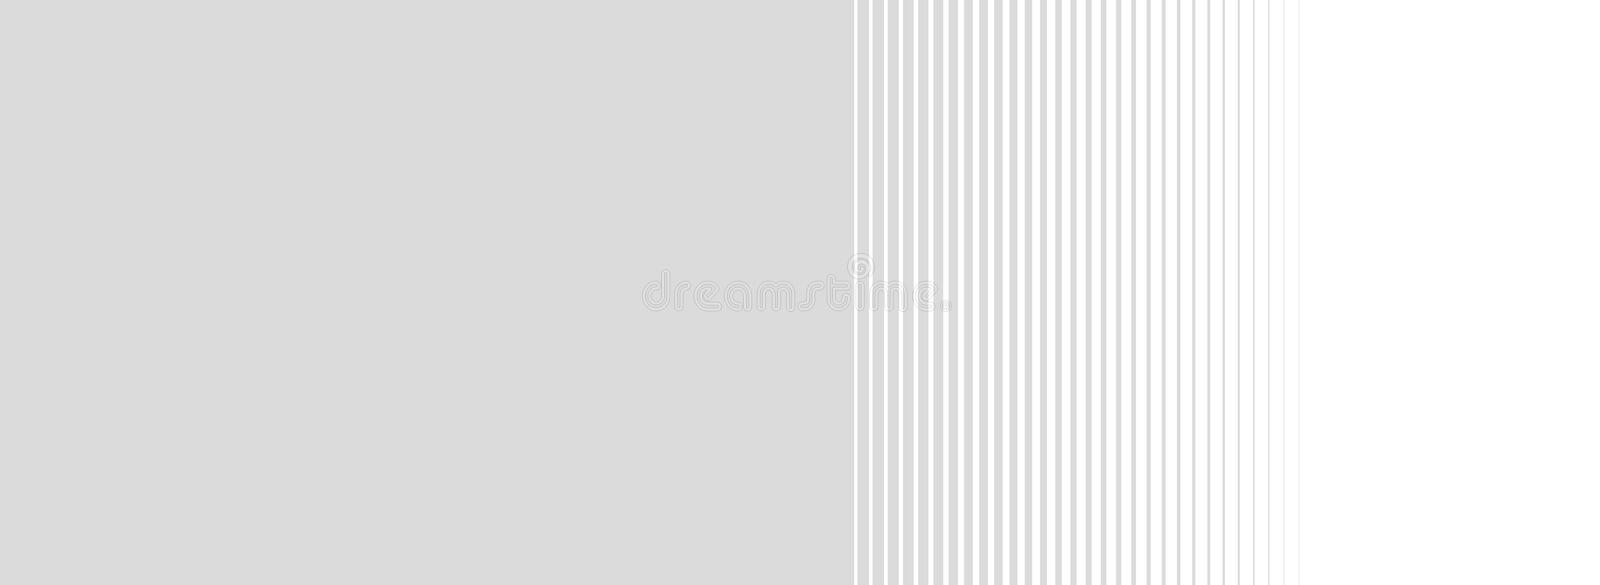 Gradient light grey background with stripes. Wide light grey background with gradient stripes stock illustration